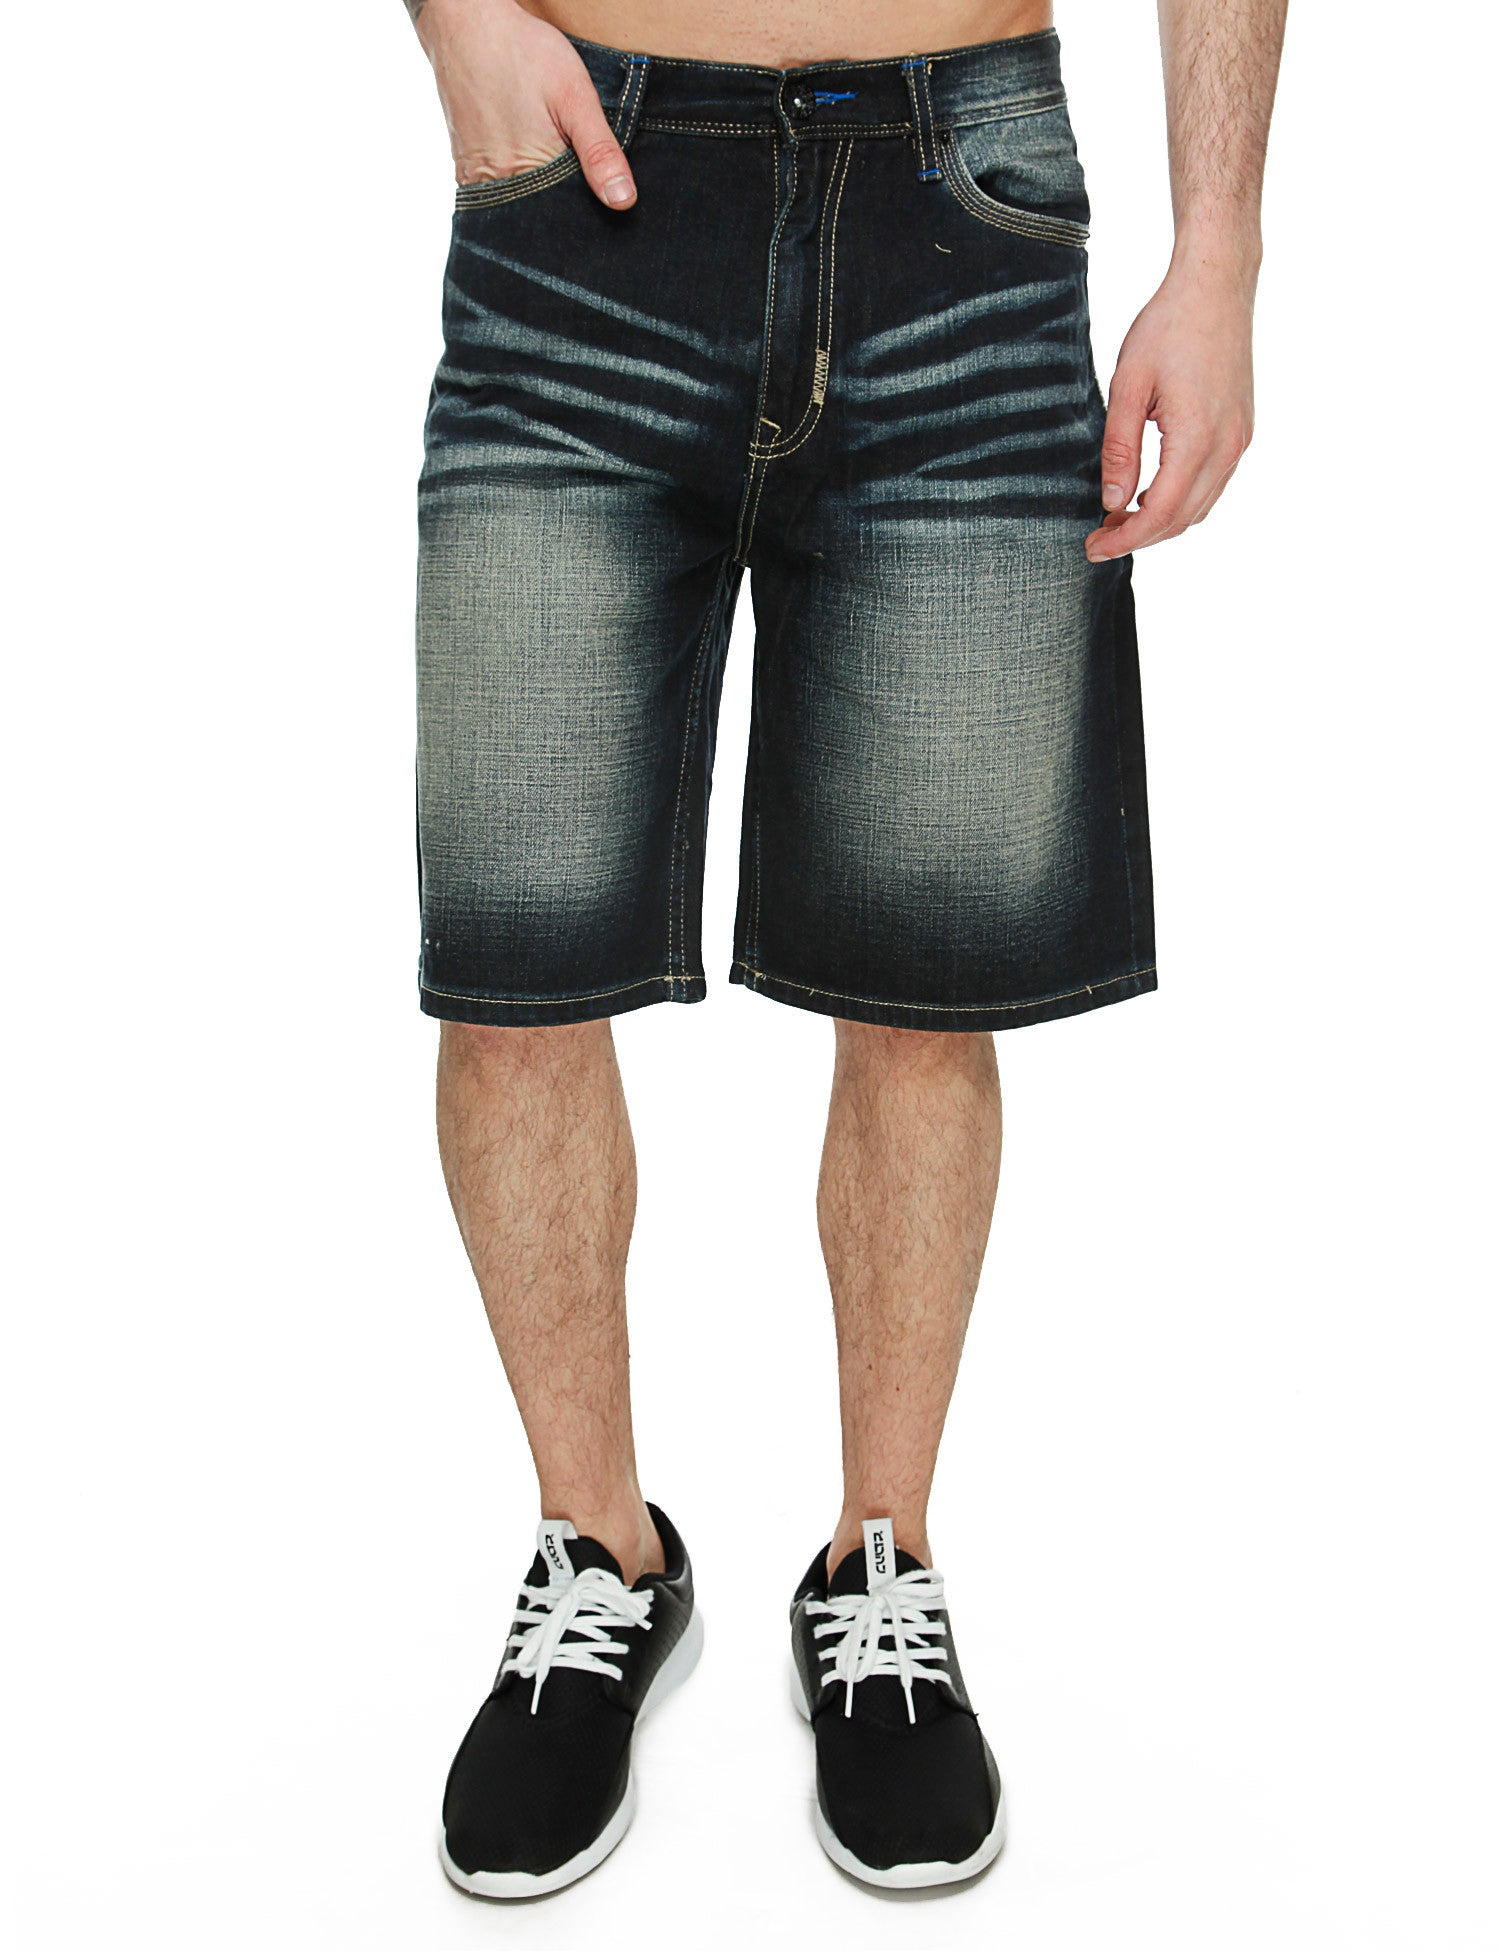 Triple Stripe Pocket Shorts V55P213S Black